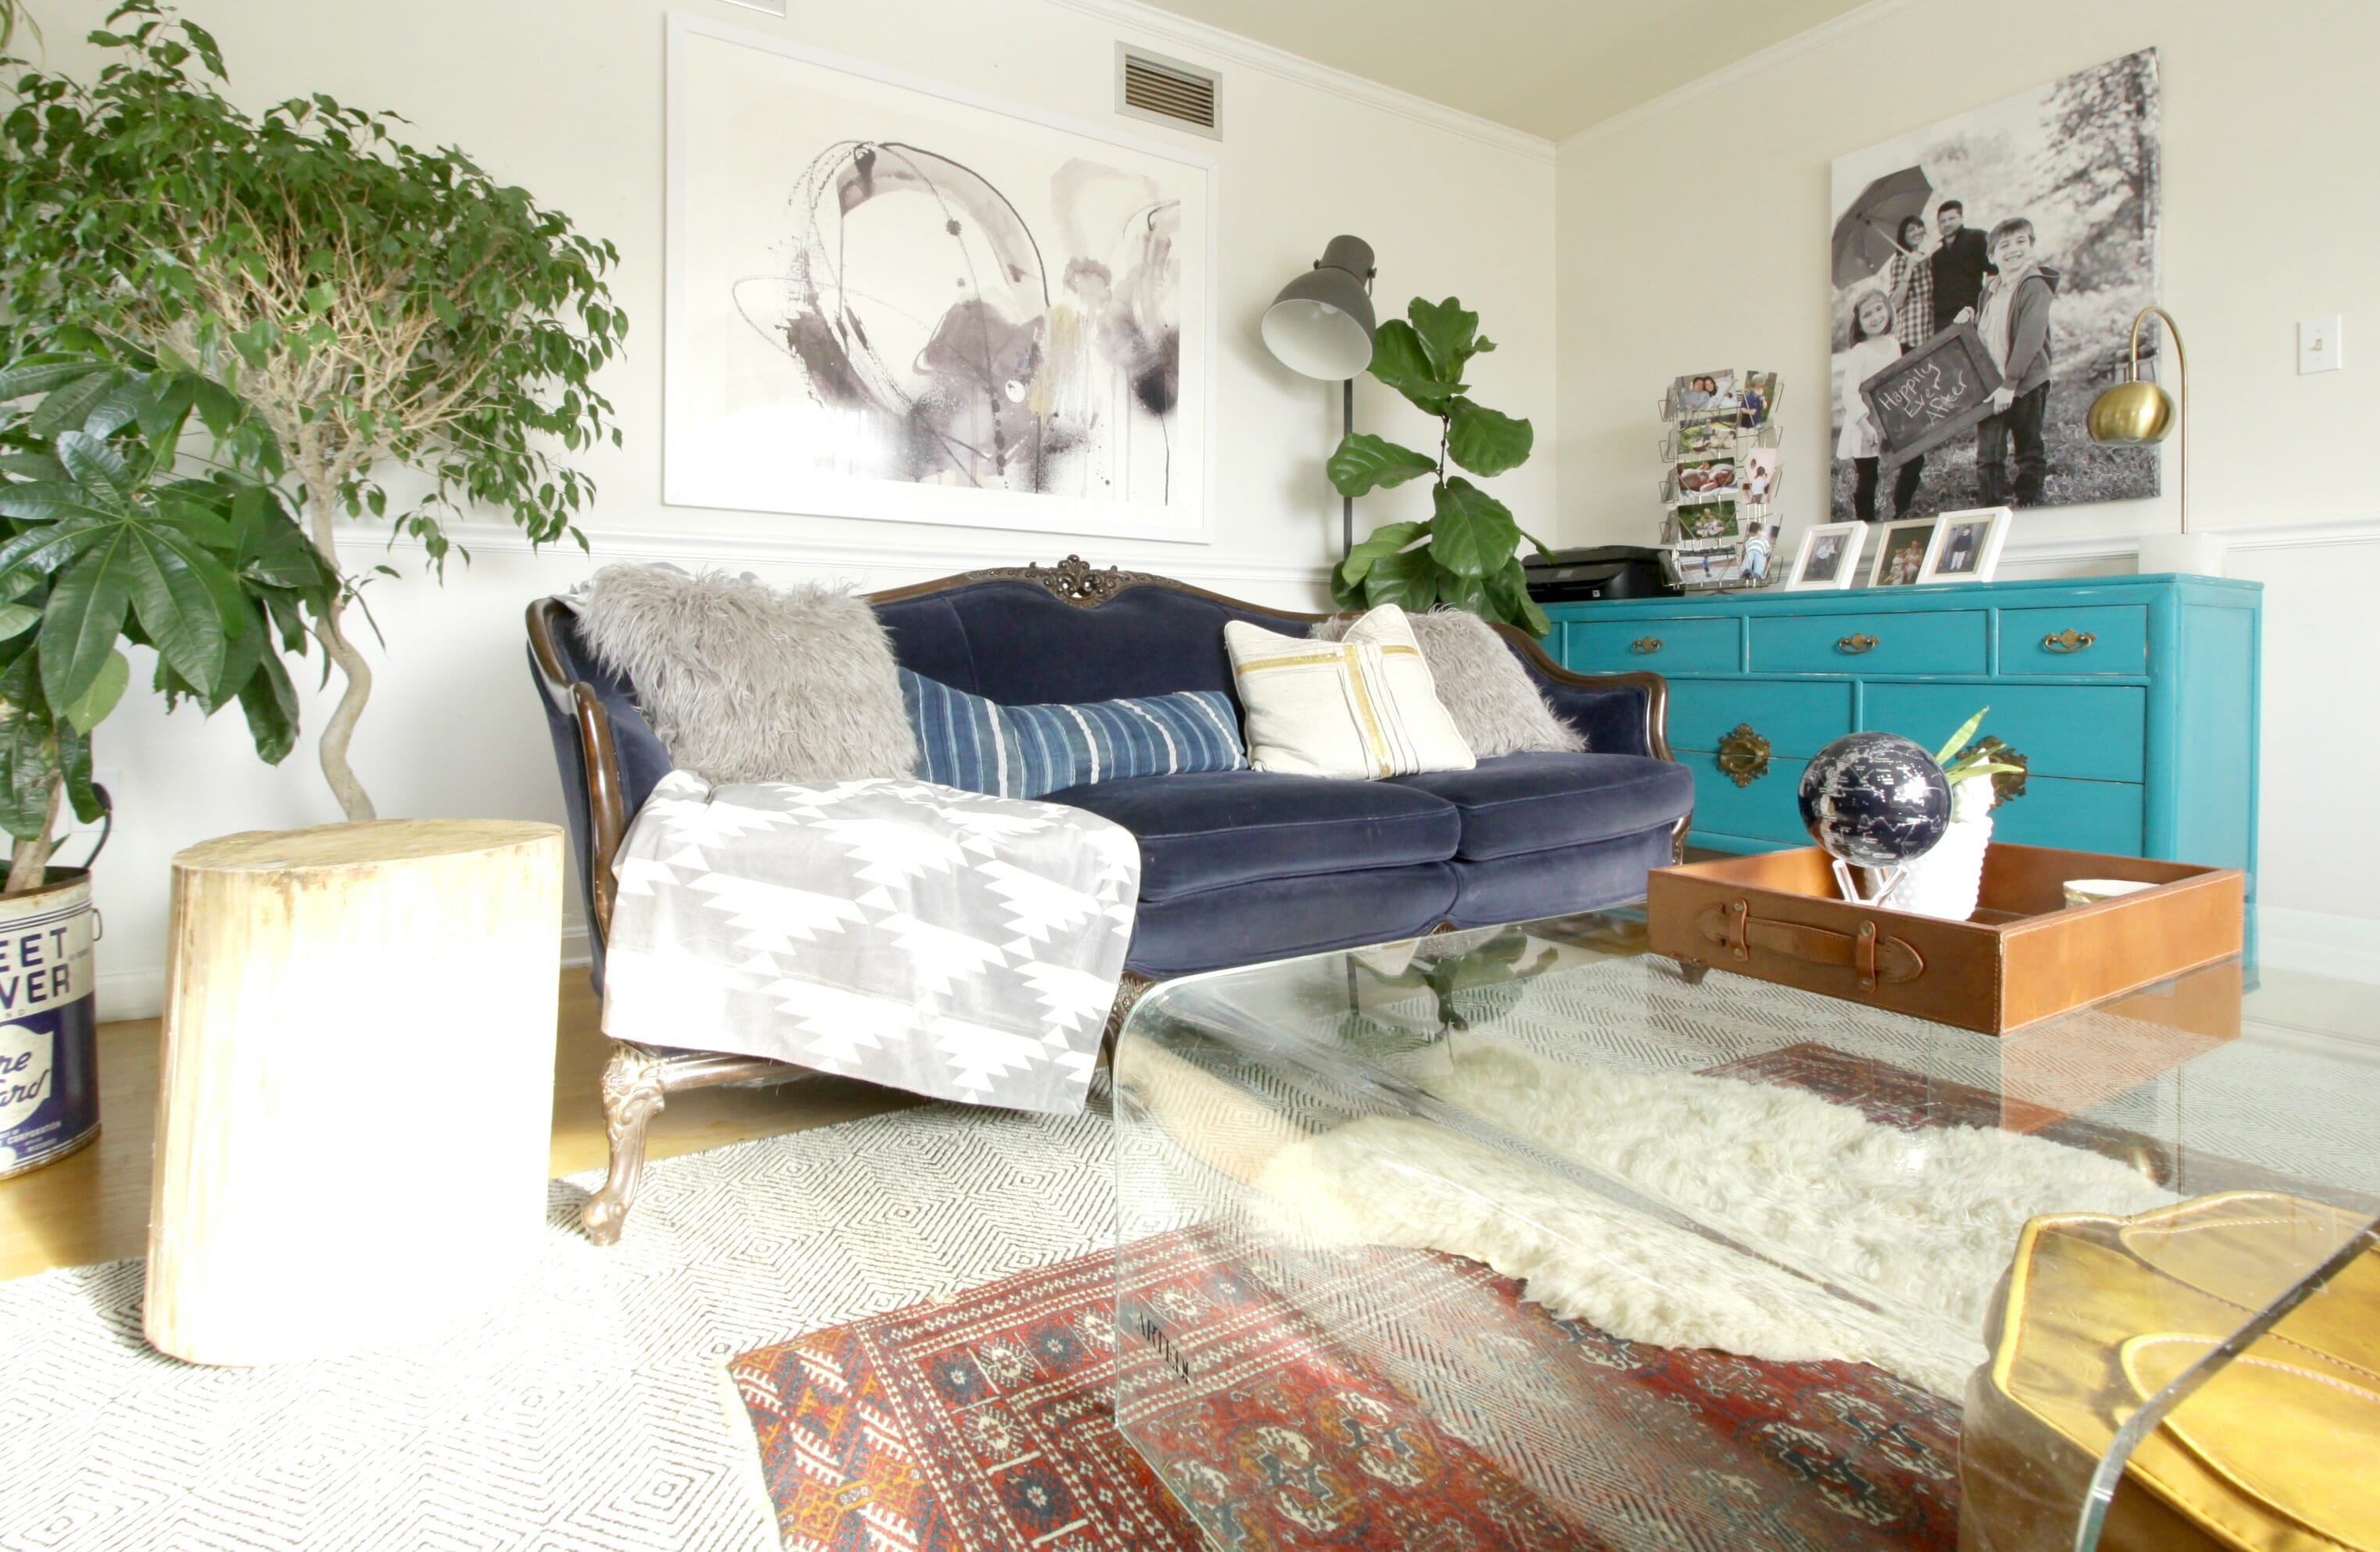 Living Room Updates: Shopping My Home - Cassie Bustamante